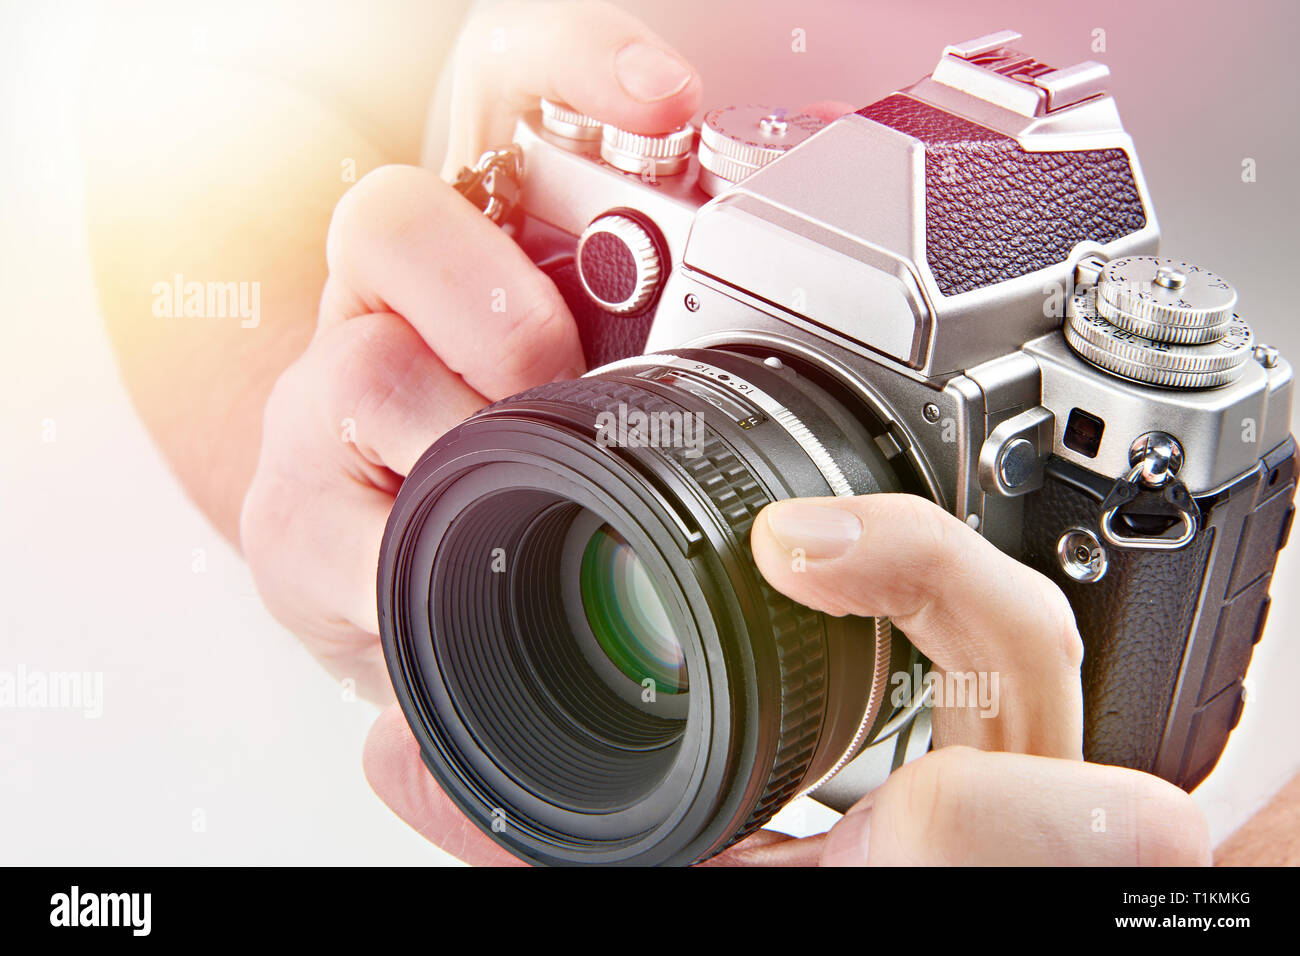 Retro SLR camera in the hands of the photographer closeup - Stock Image